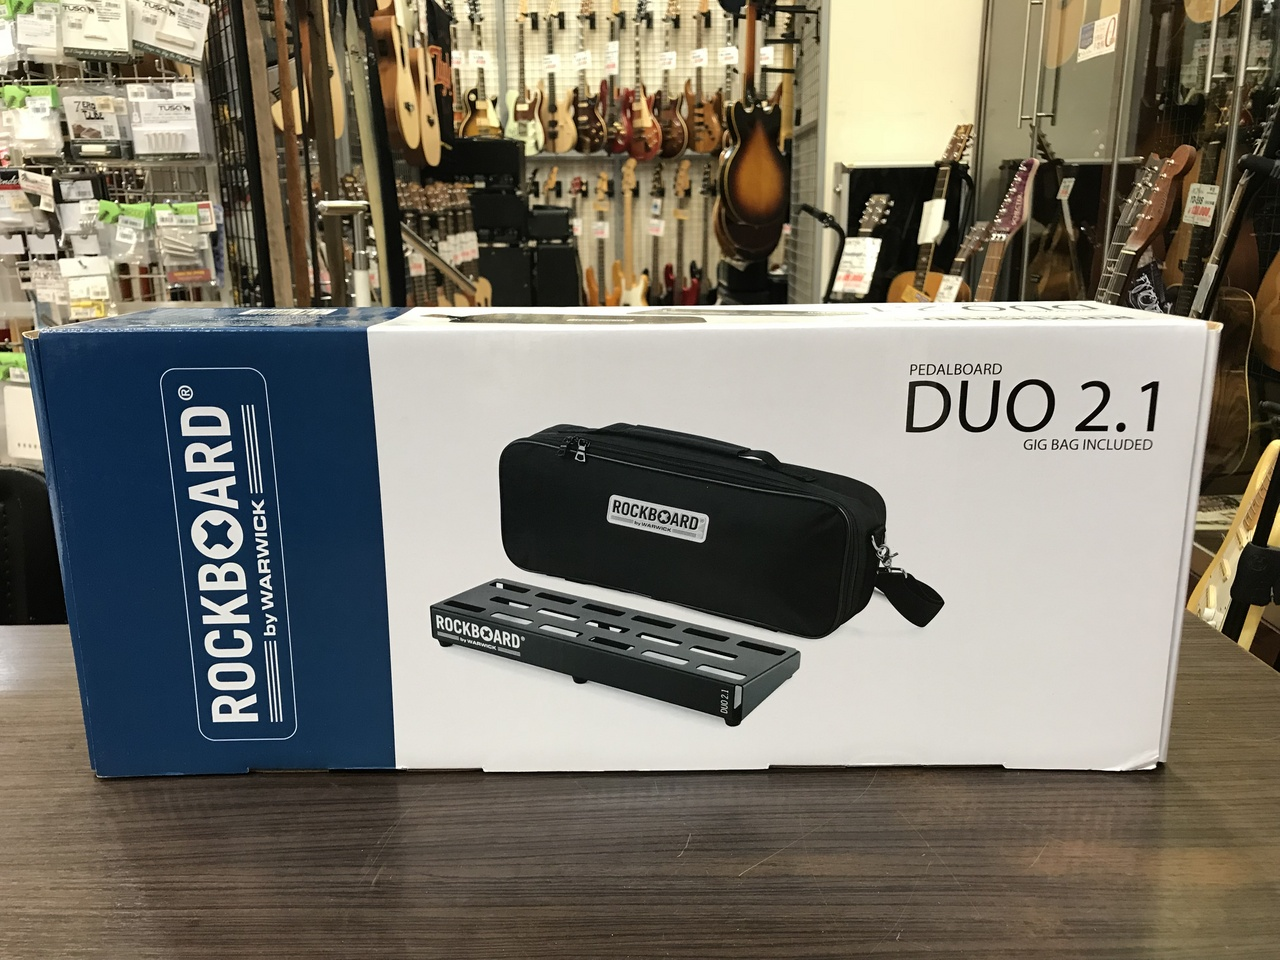 RockBoard Duo 2.1 w / Gig Bag 460 x 146 mm Outlet Specials]